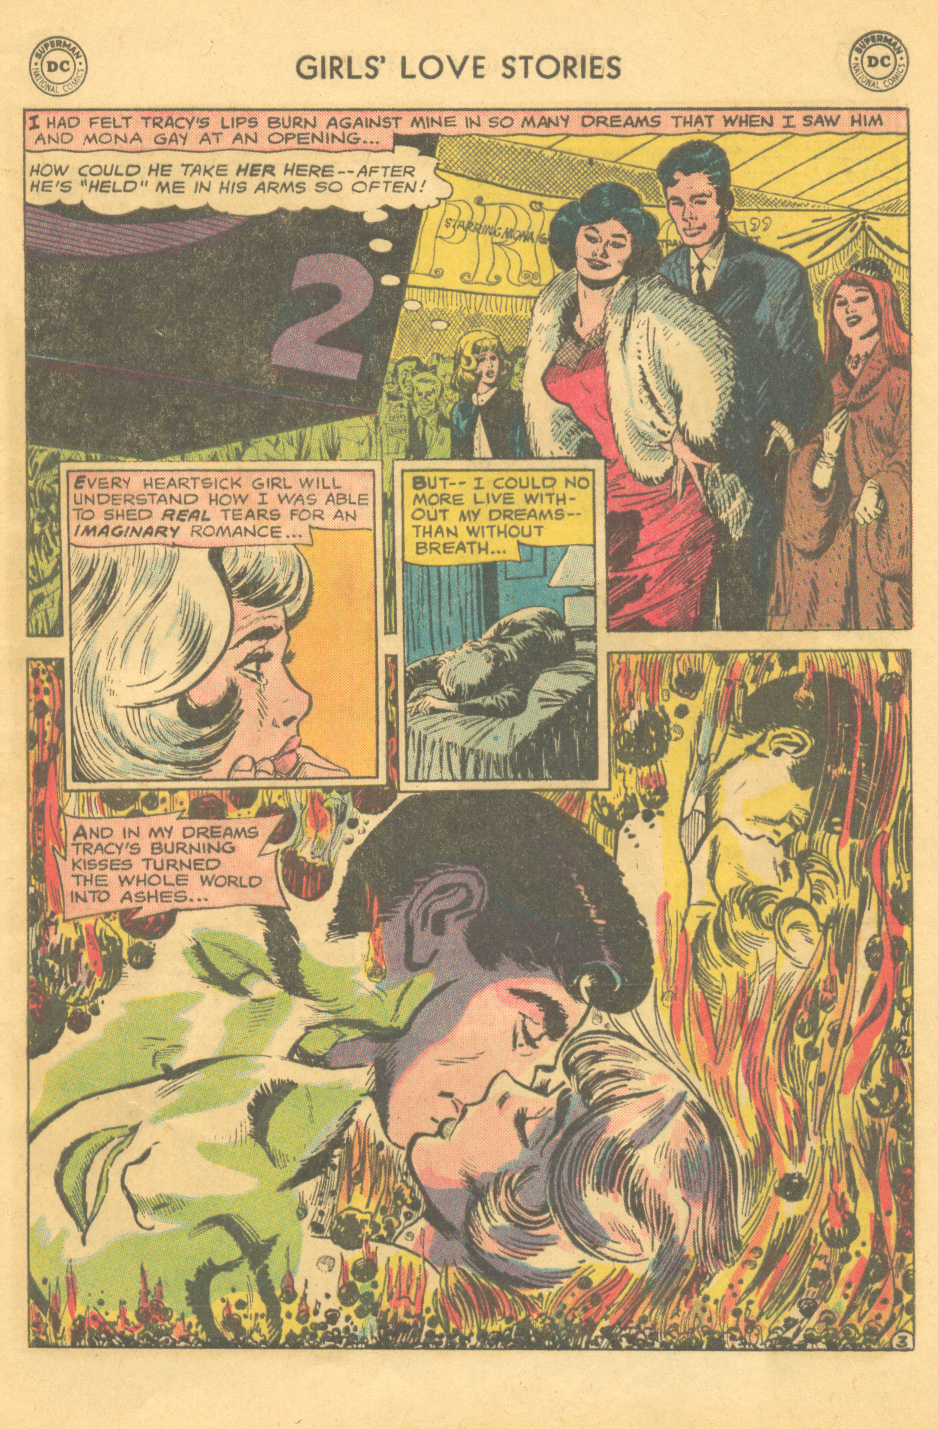 """Burn, Heart -- Burn!"" Girls' Love Stories #113 (August 1965)"